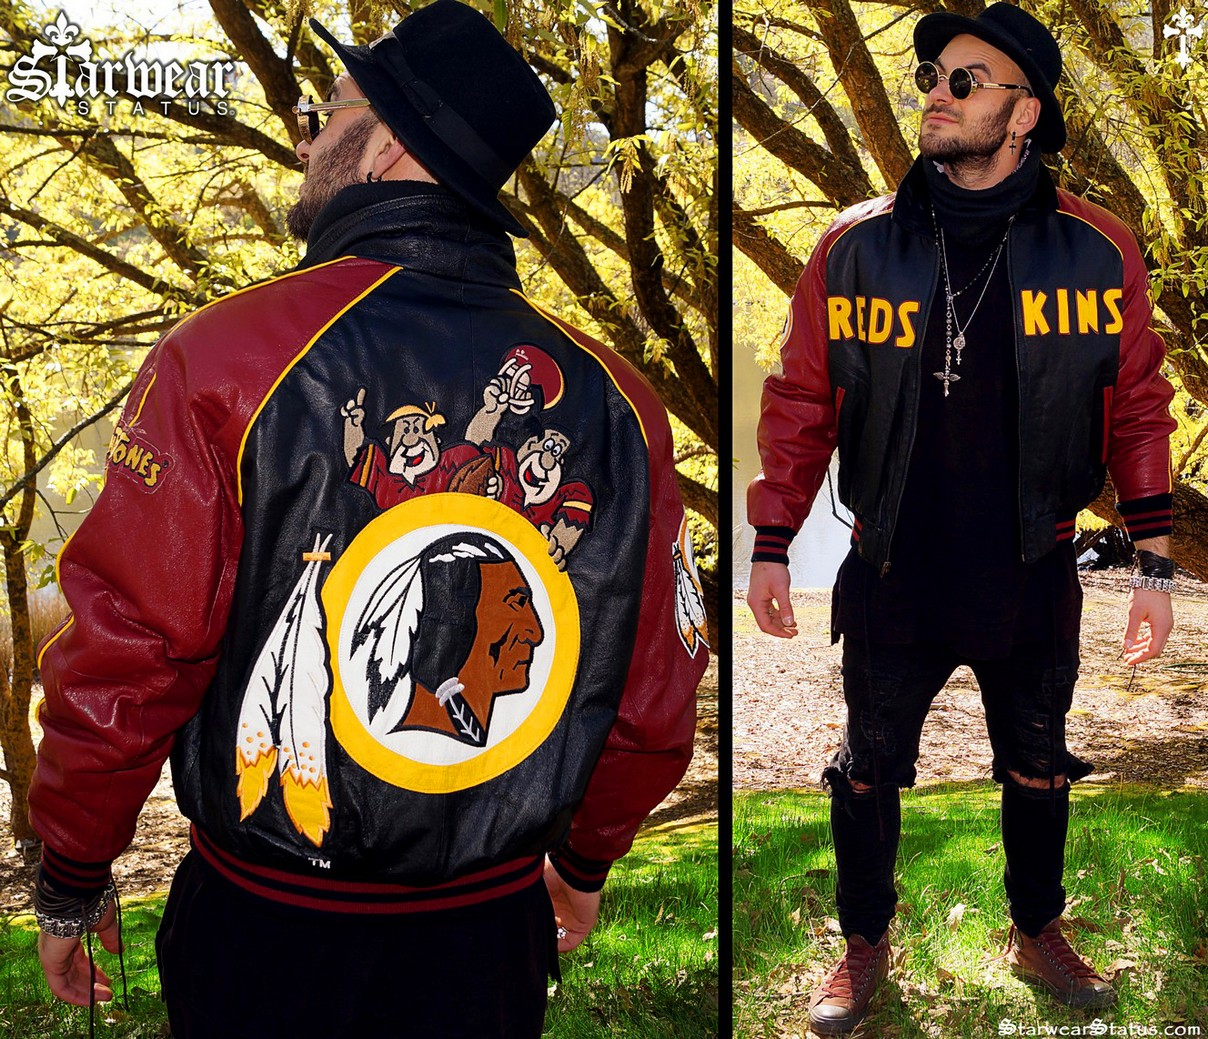 buy online ed692 3a4b3 90s Vintage The Flintstones Cartoon Redskins NFL Football Leather Bomber  Jacket Men's Size - Medium/Large (RARE By Montana Toons!)